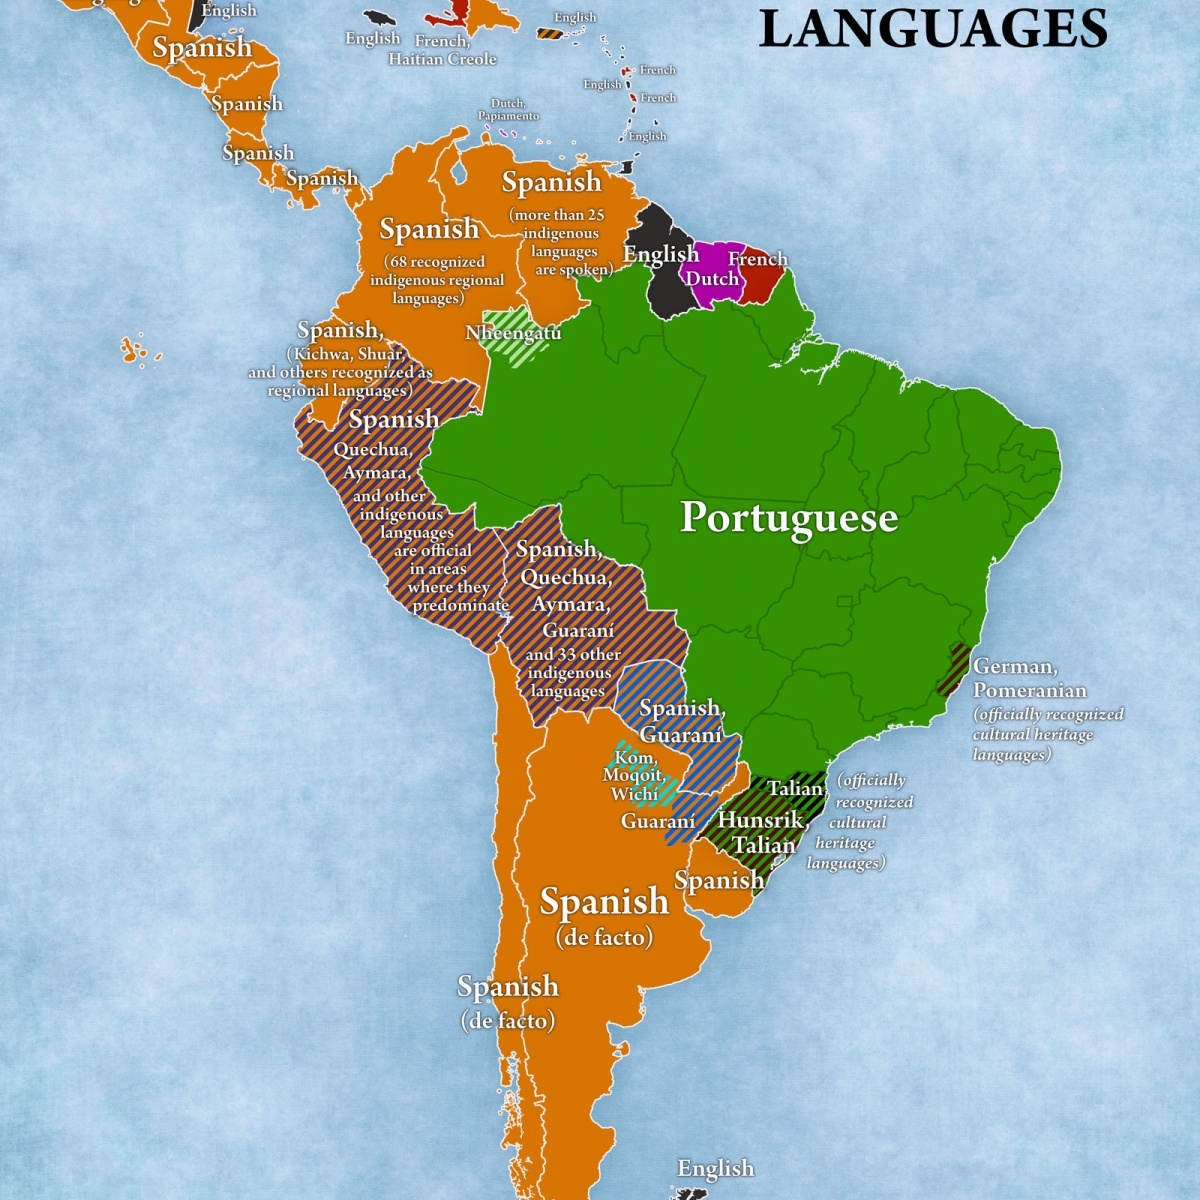 Official languages in South and Central America